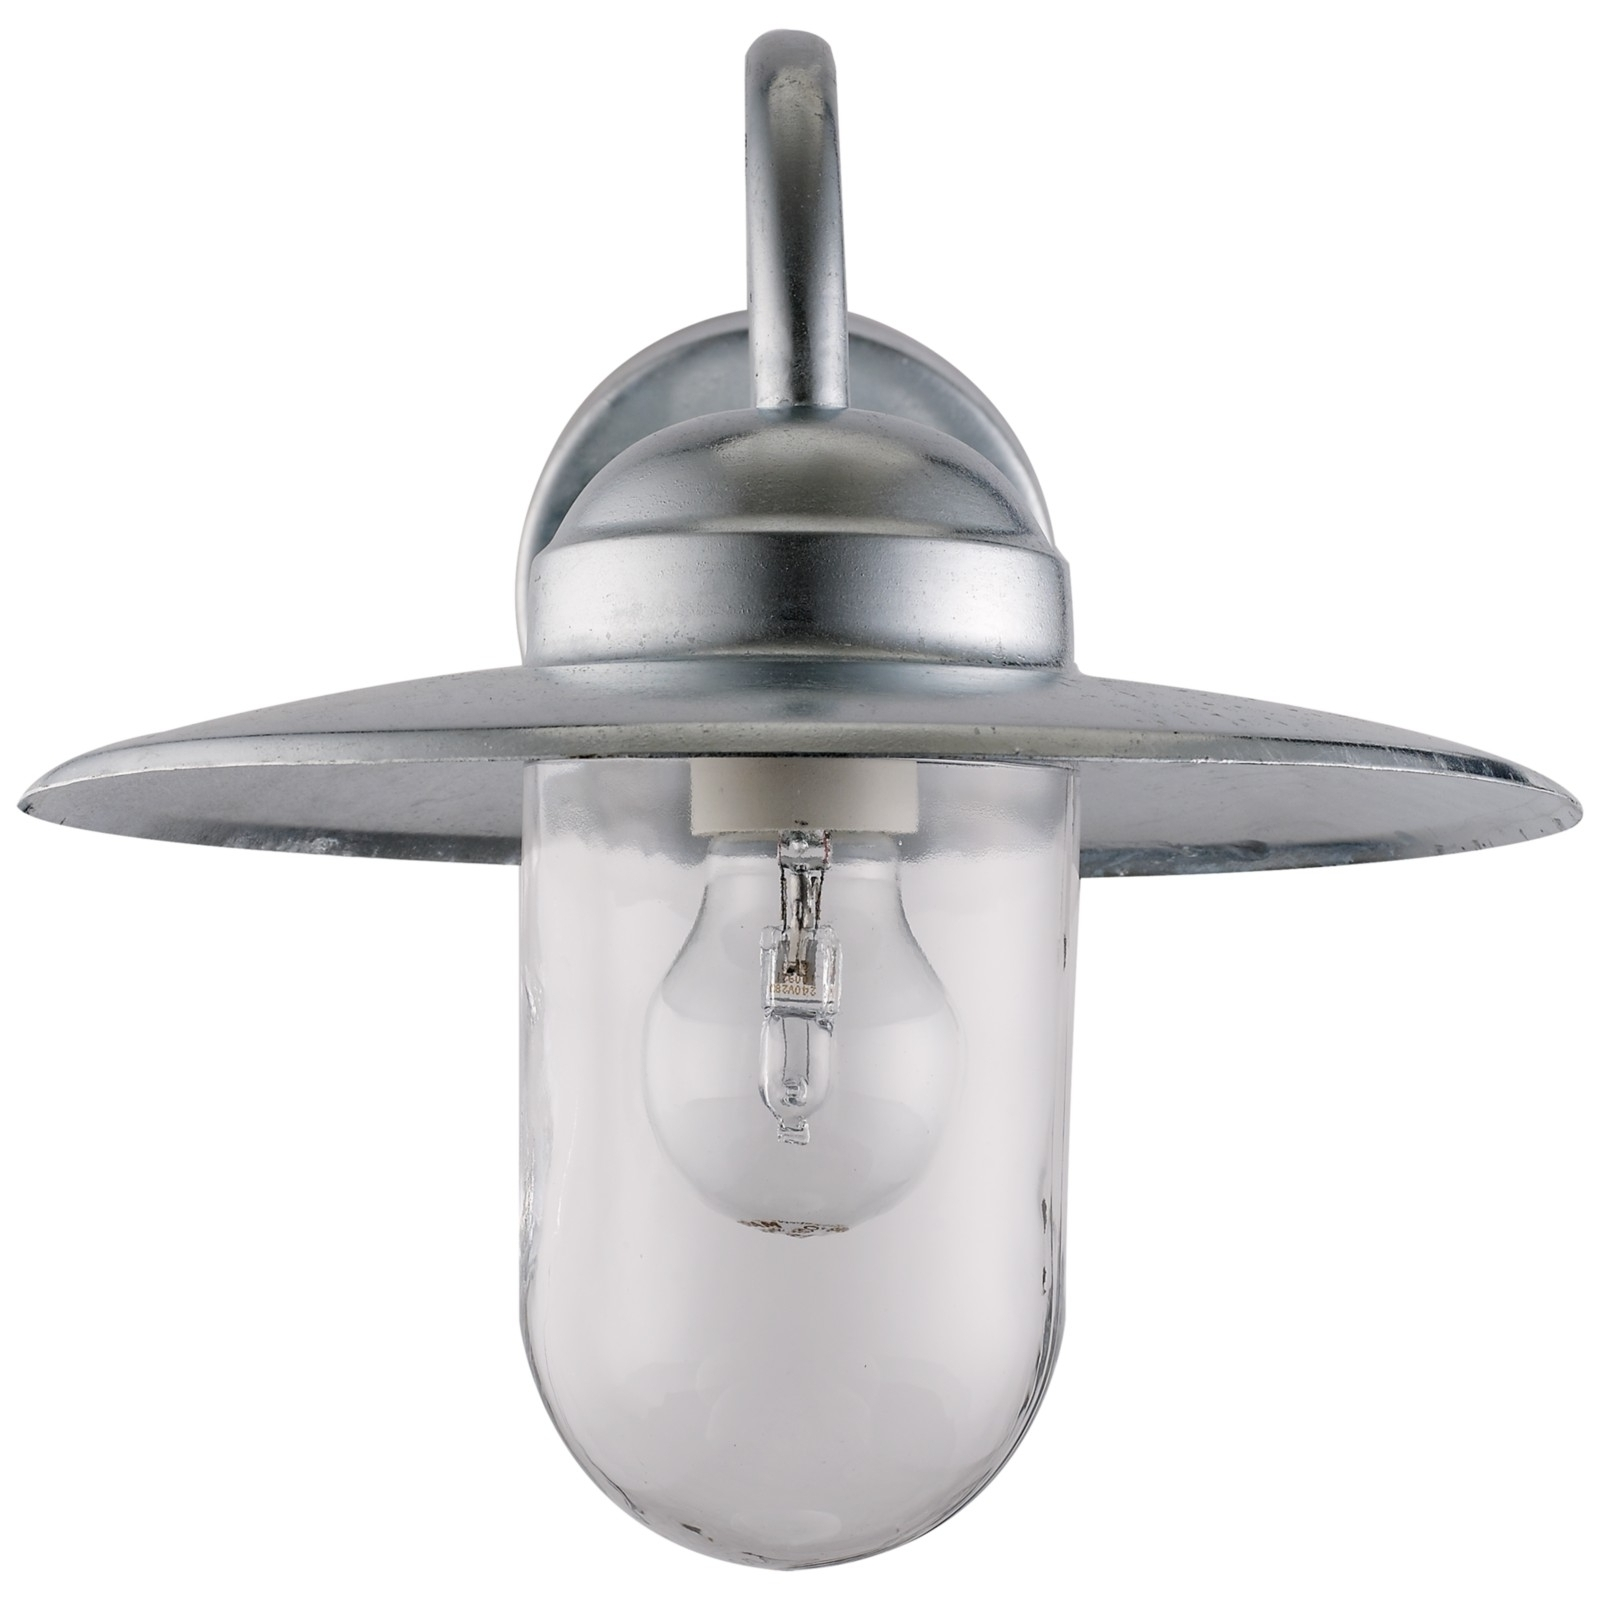 Outdoor Lanterns With Pir In Current 20 Photos Outdoor Wall Lights With Pir (View 17 of 20)